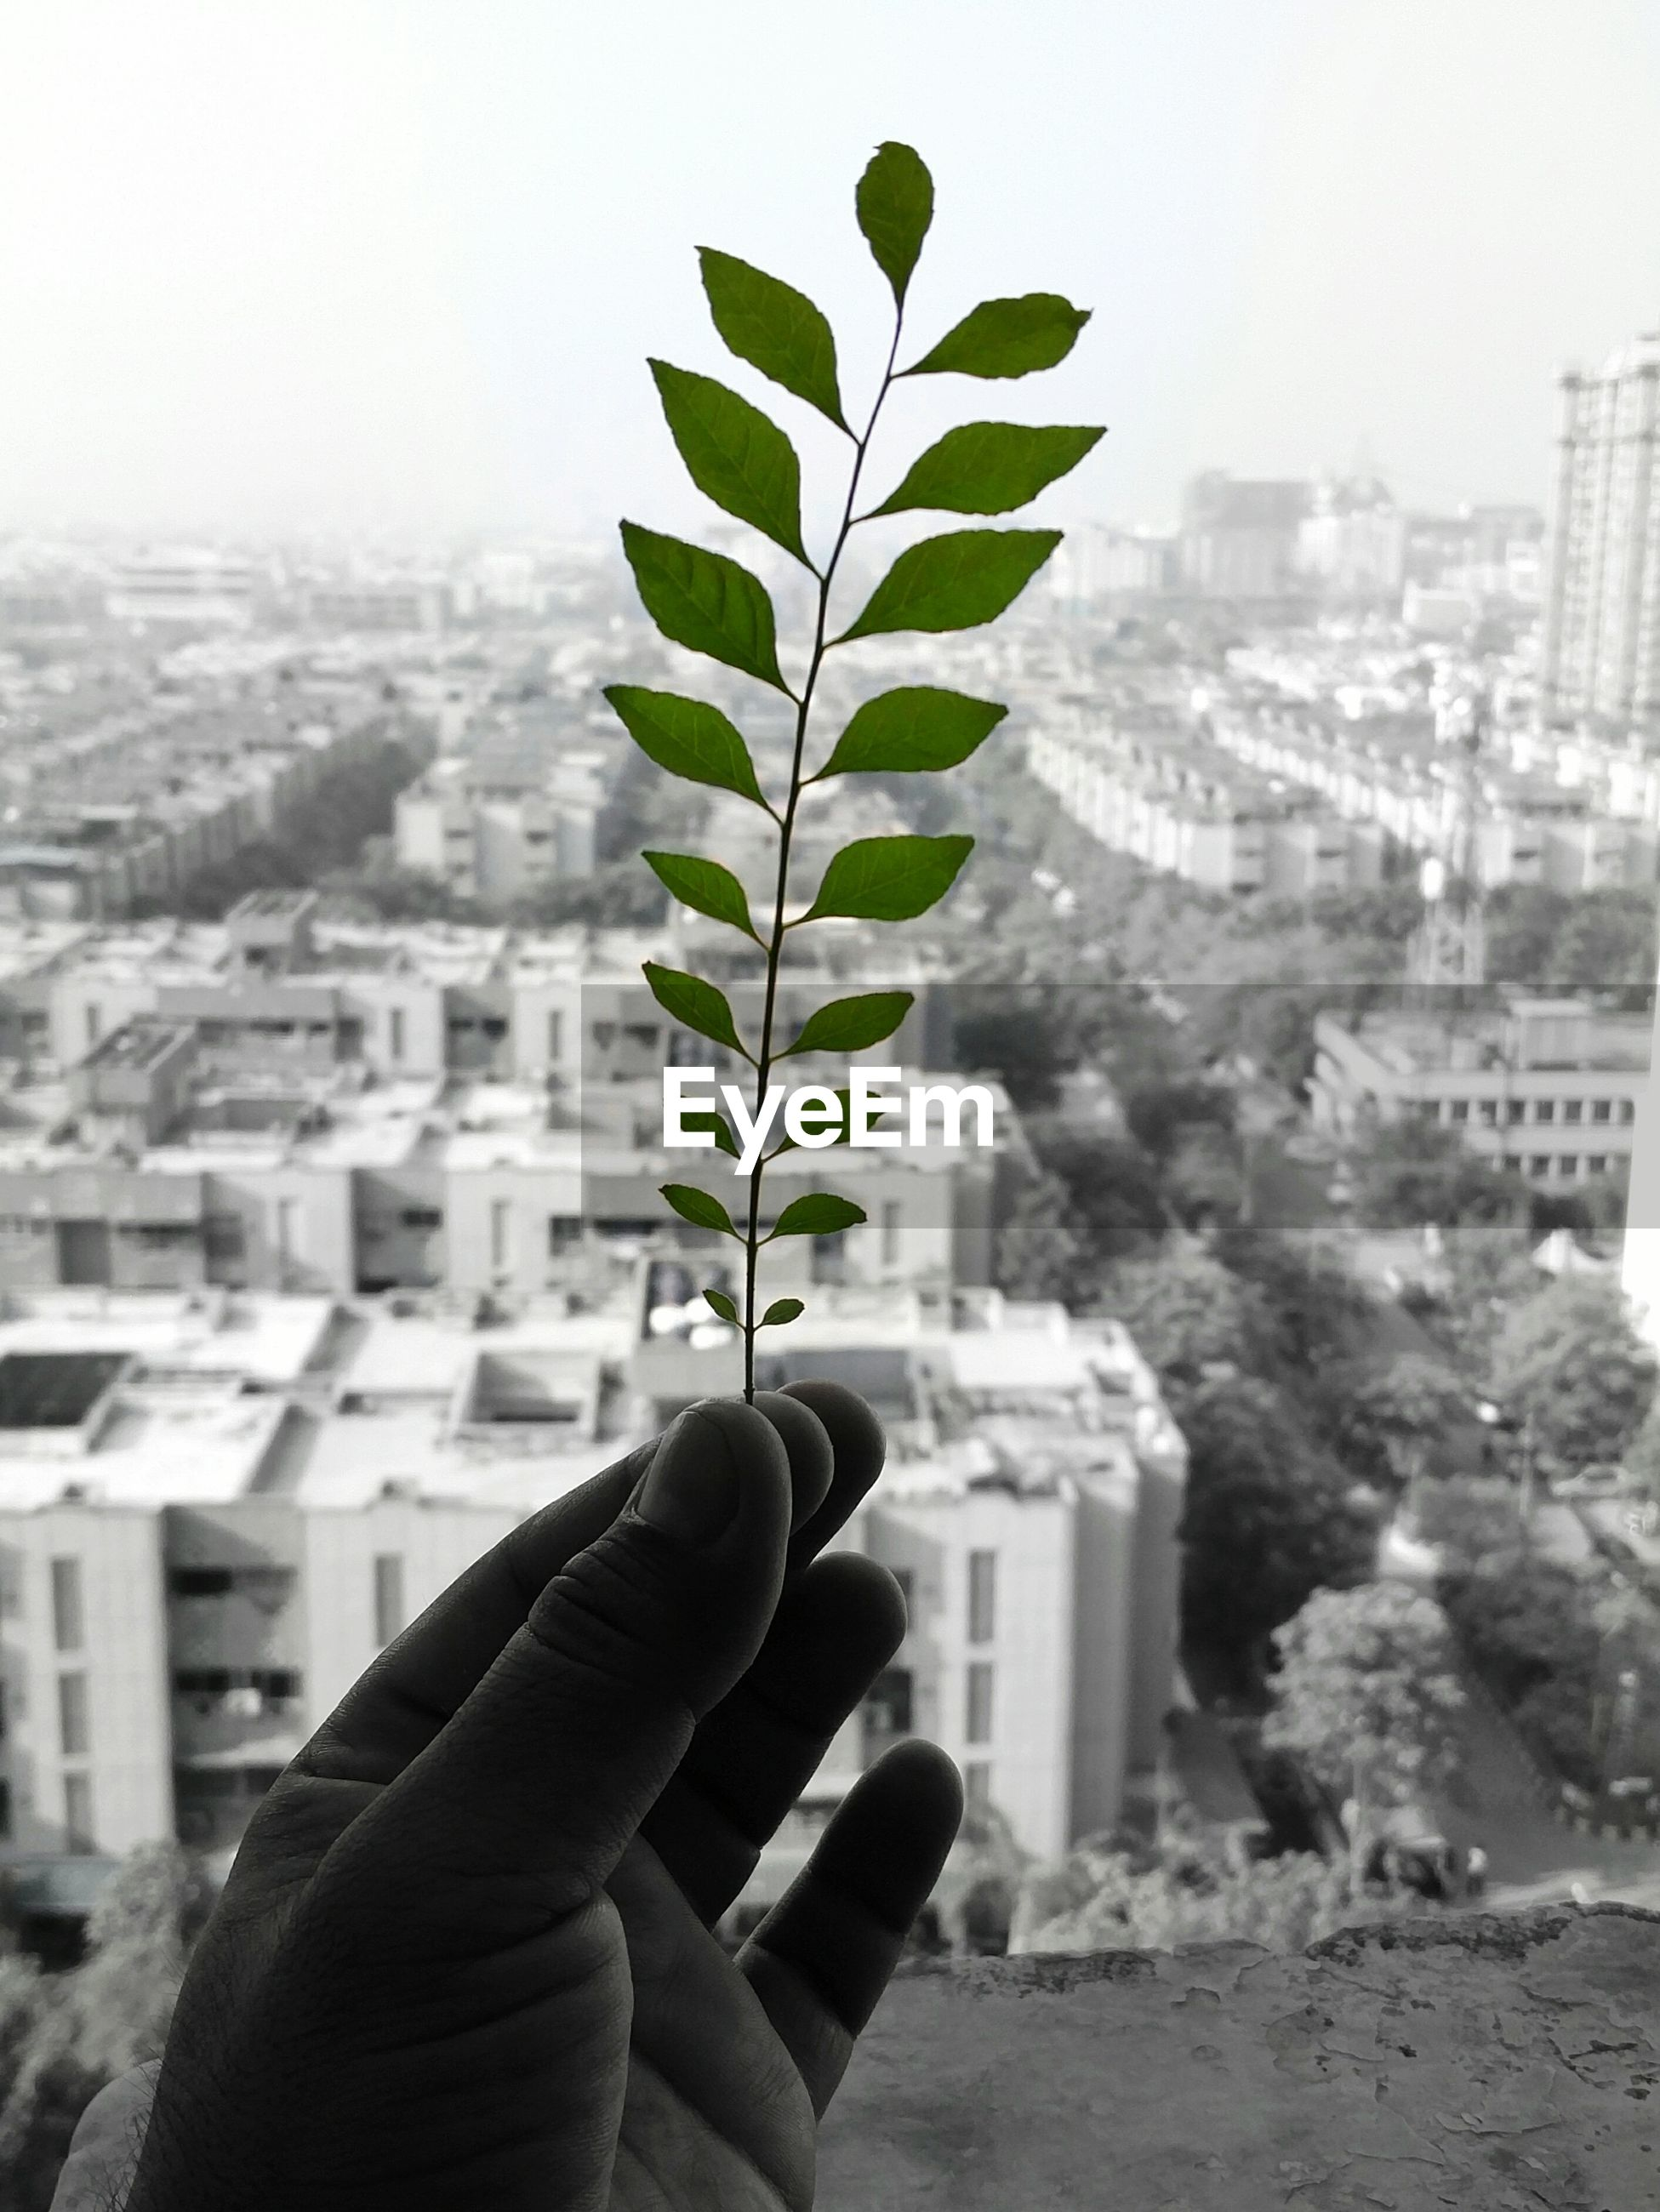 CLOSE-UP OF HAND HOLDING PLANT AGAINST CITY